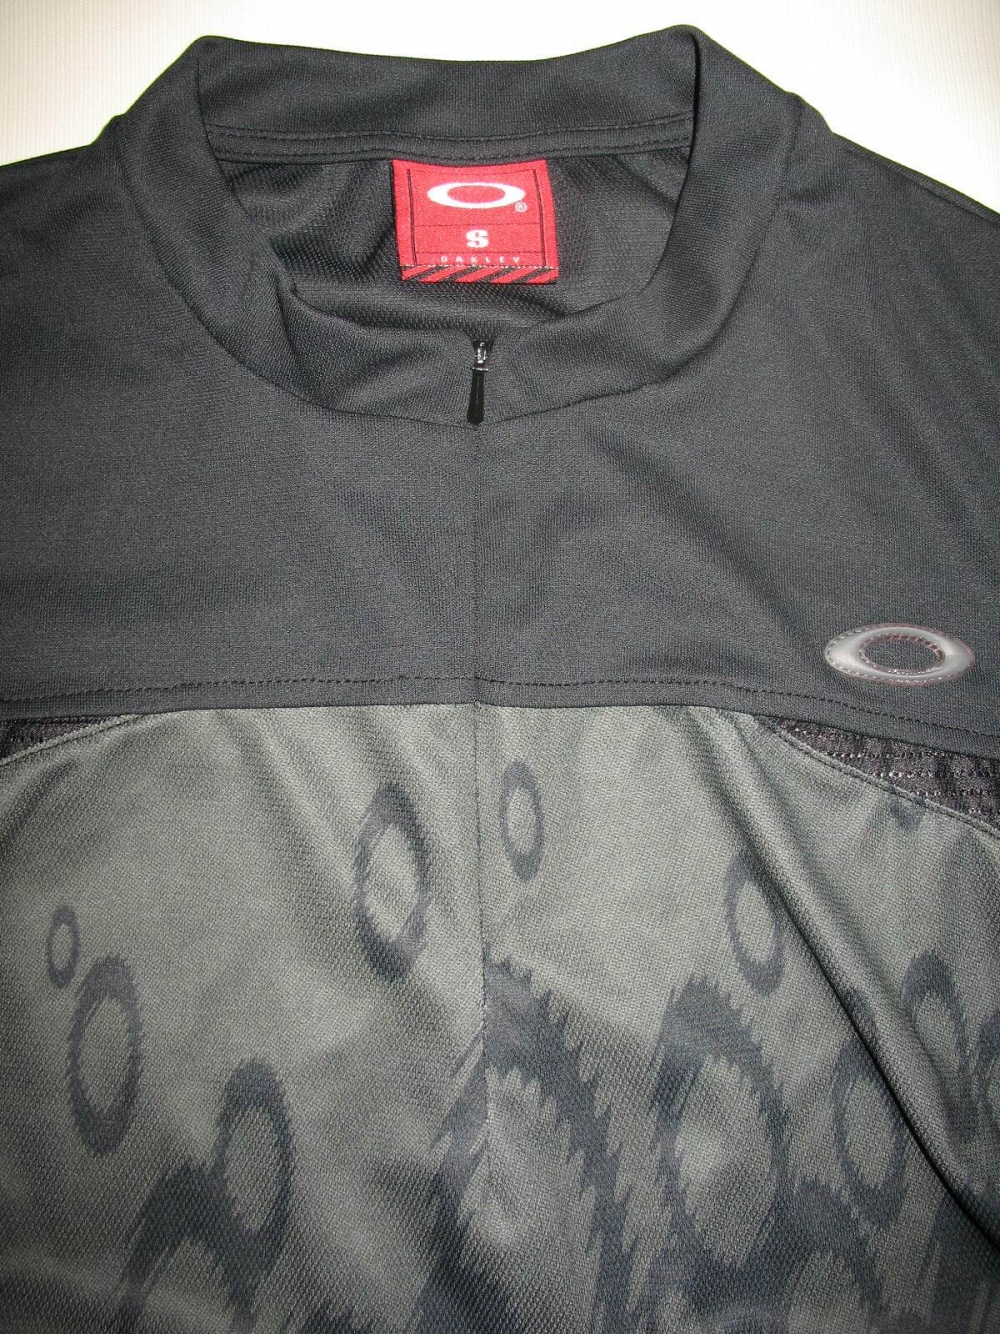 Веломайка OAKLEY tactical field gear mtb shirt (размер S/M) - 2